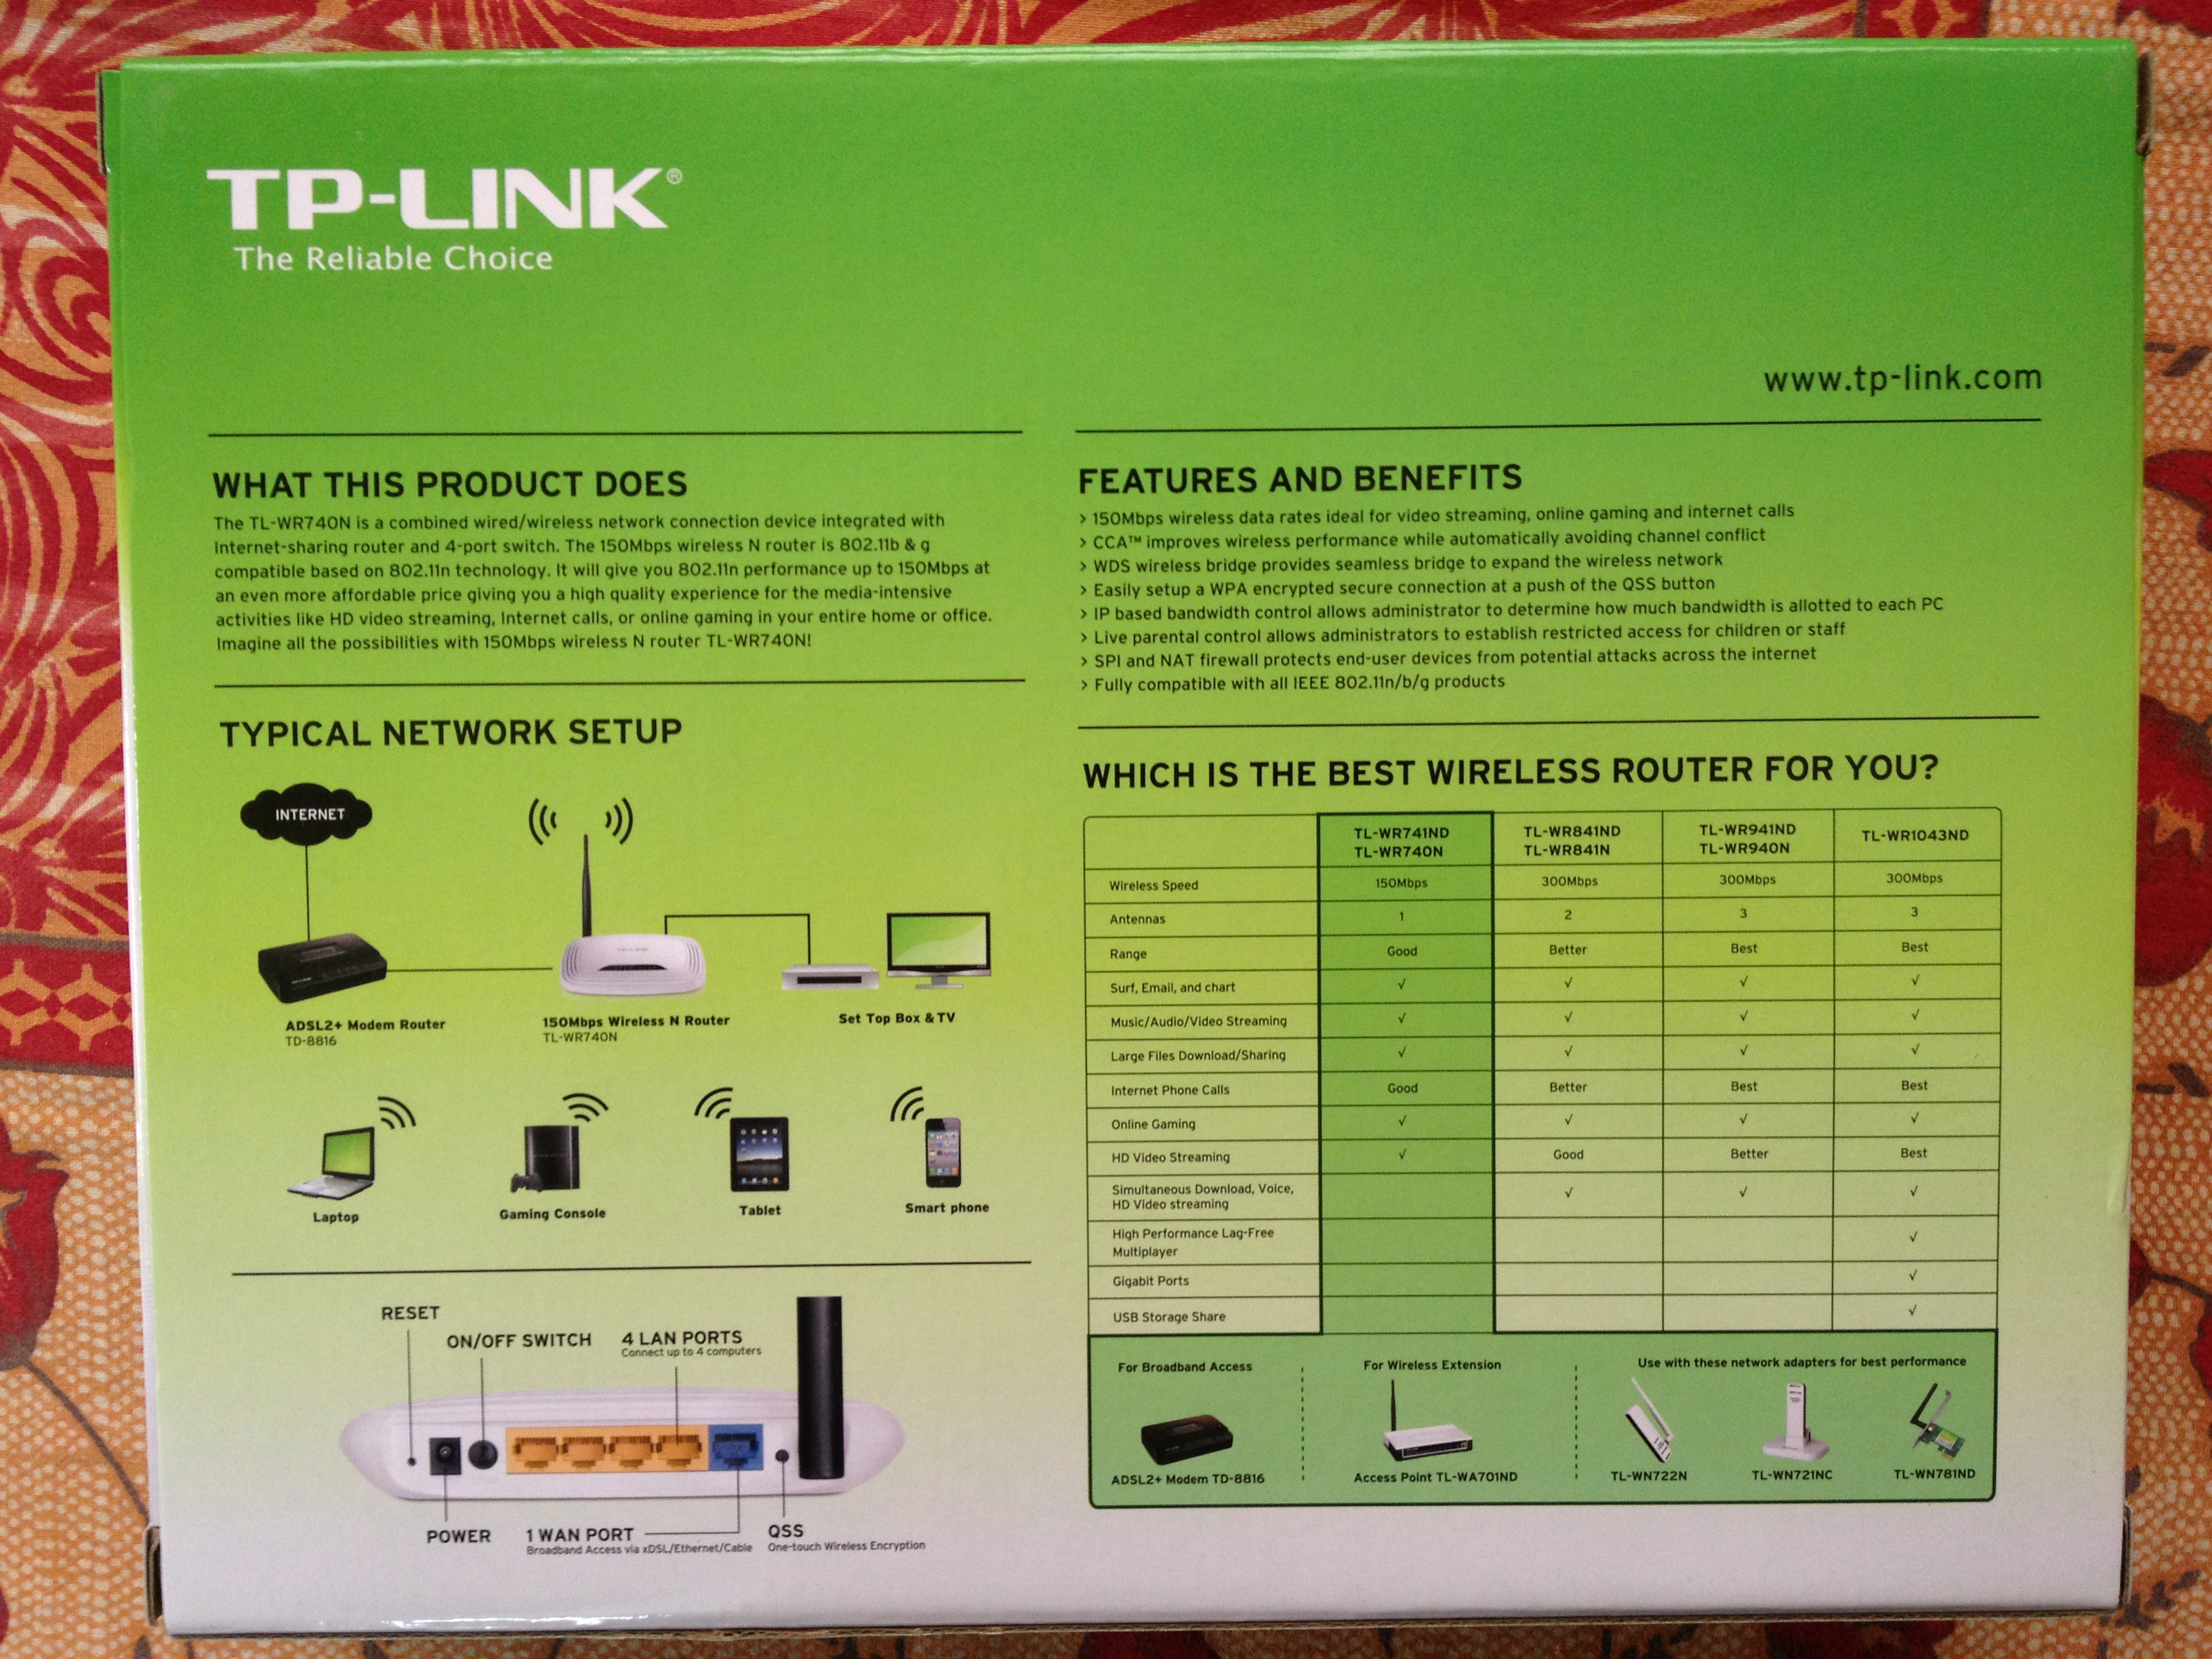 TP-LINK TL-WR740N box back side